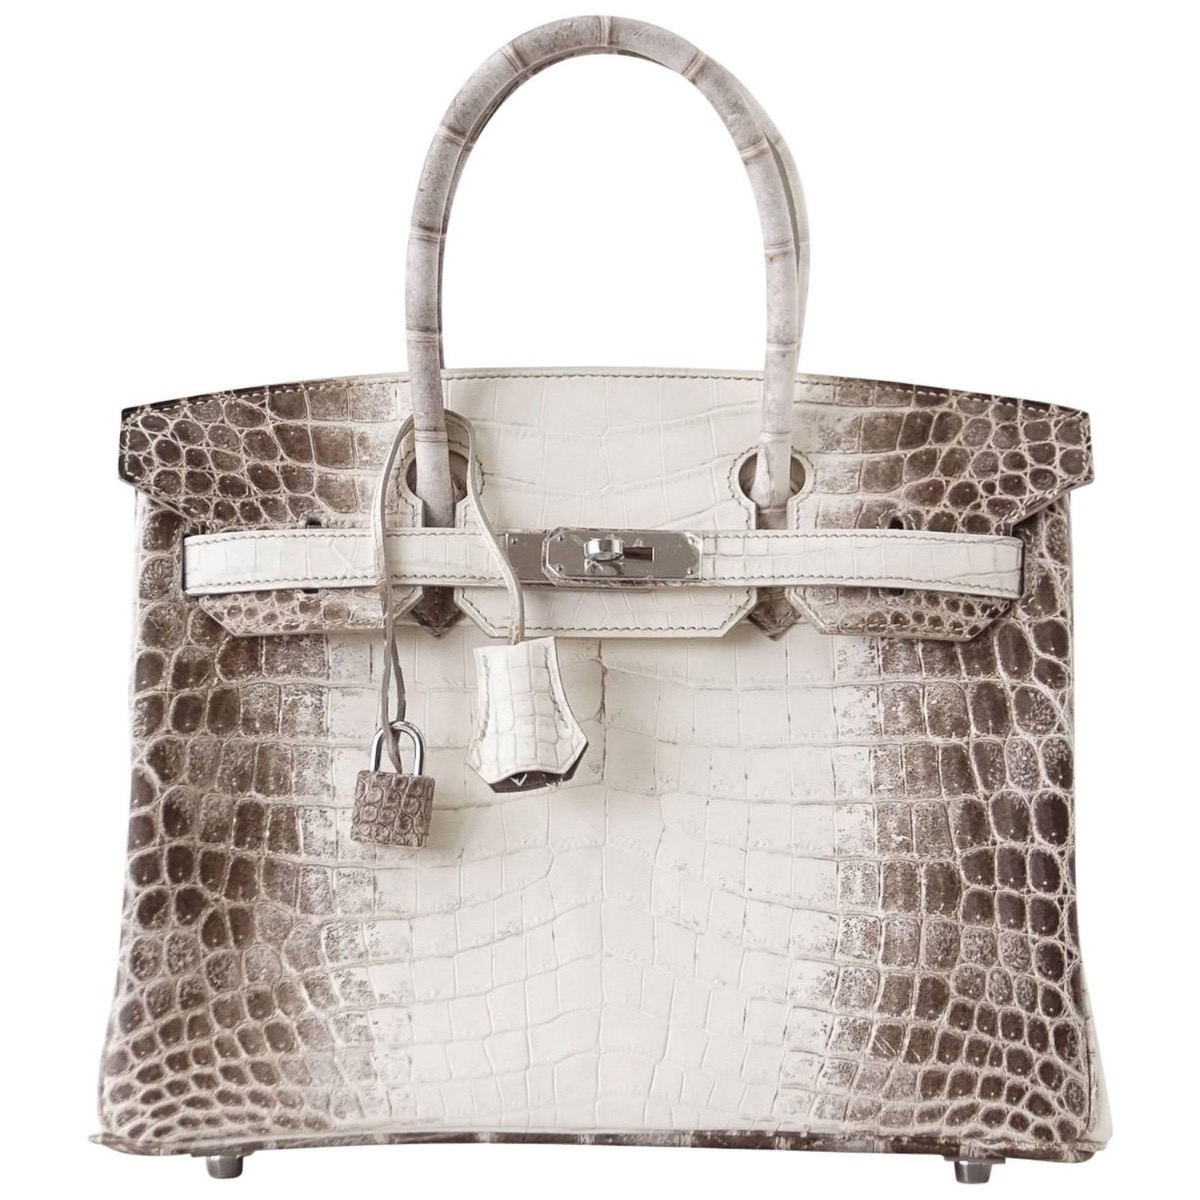 The Most Expensive Hermès Bags Online Are Sold Here